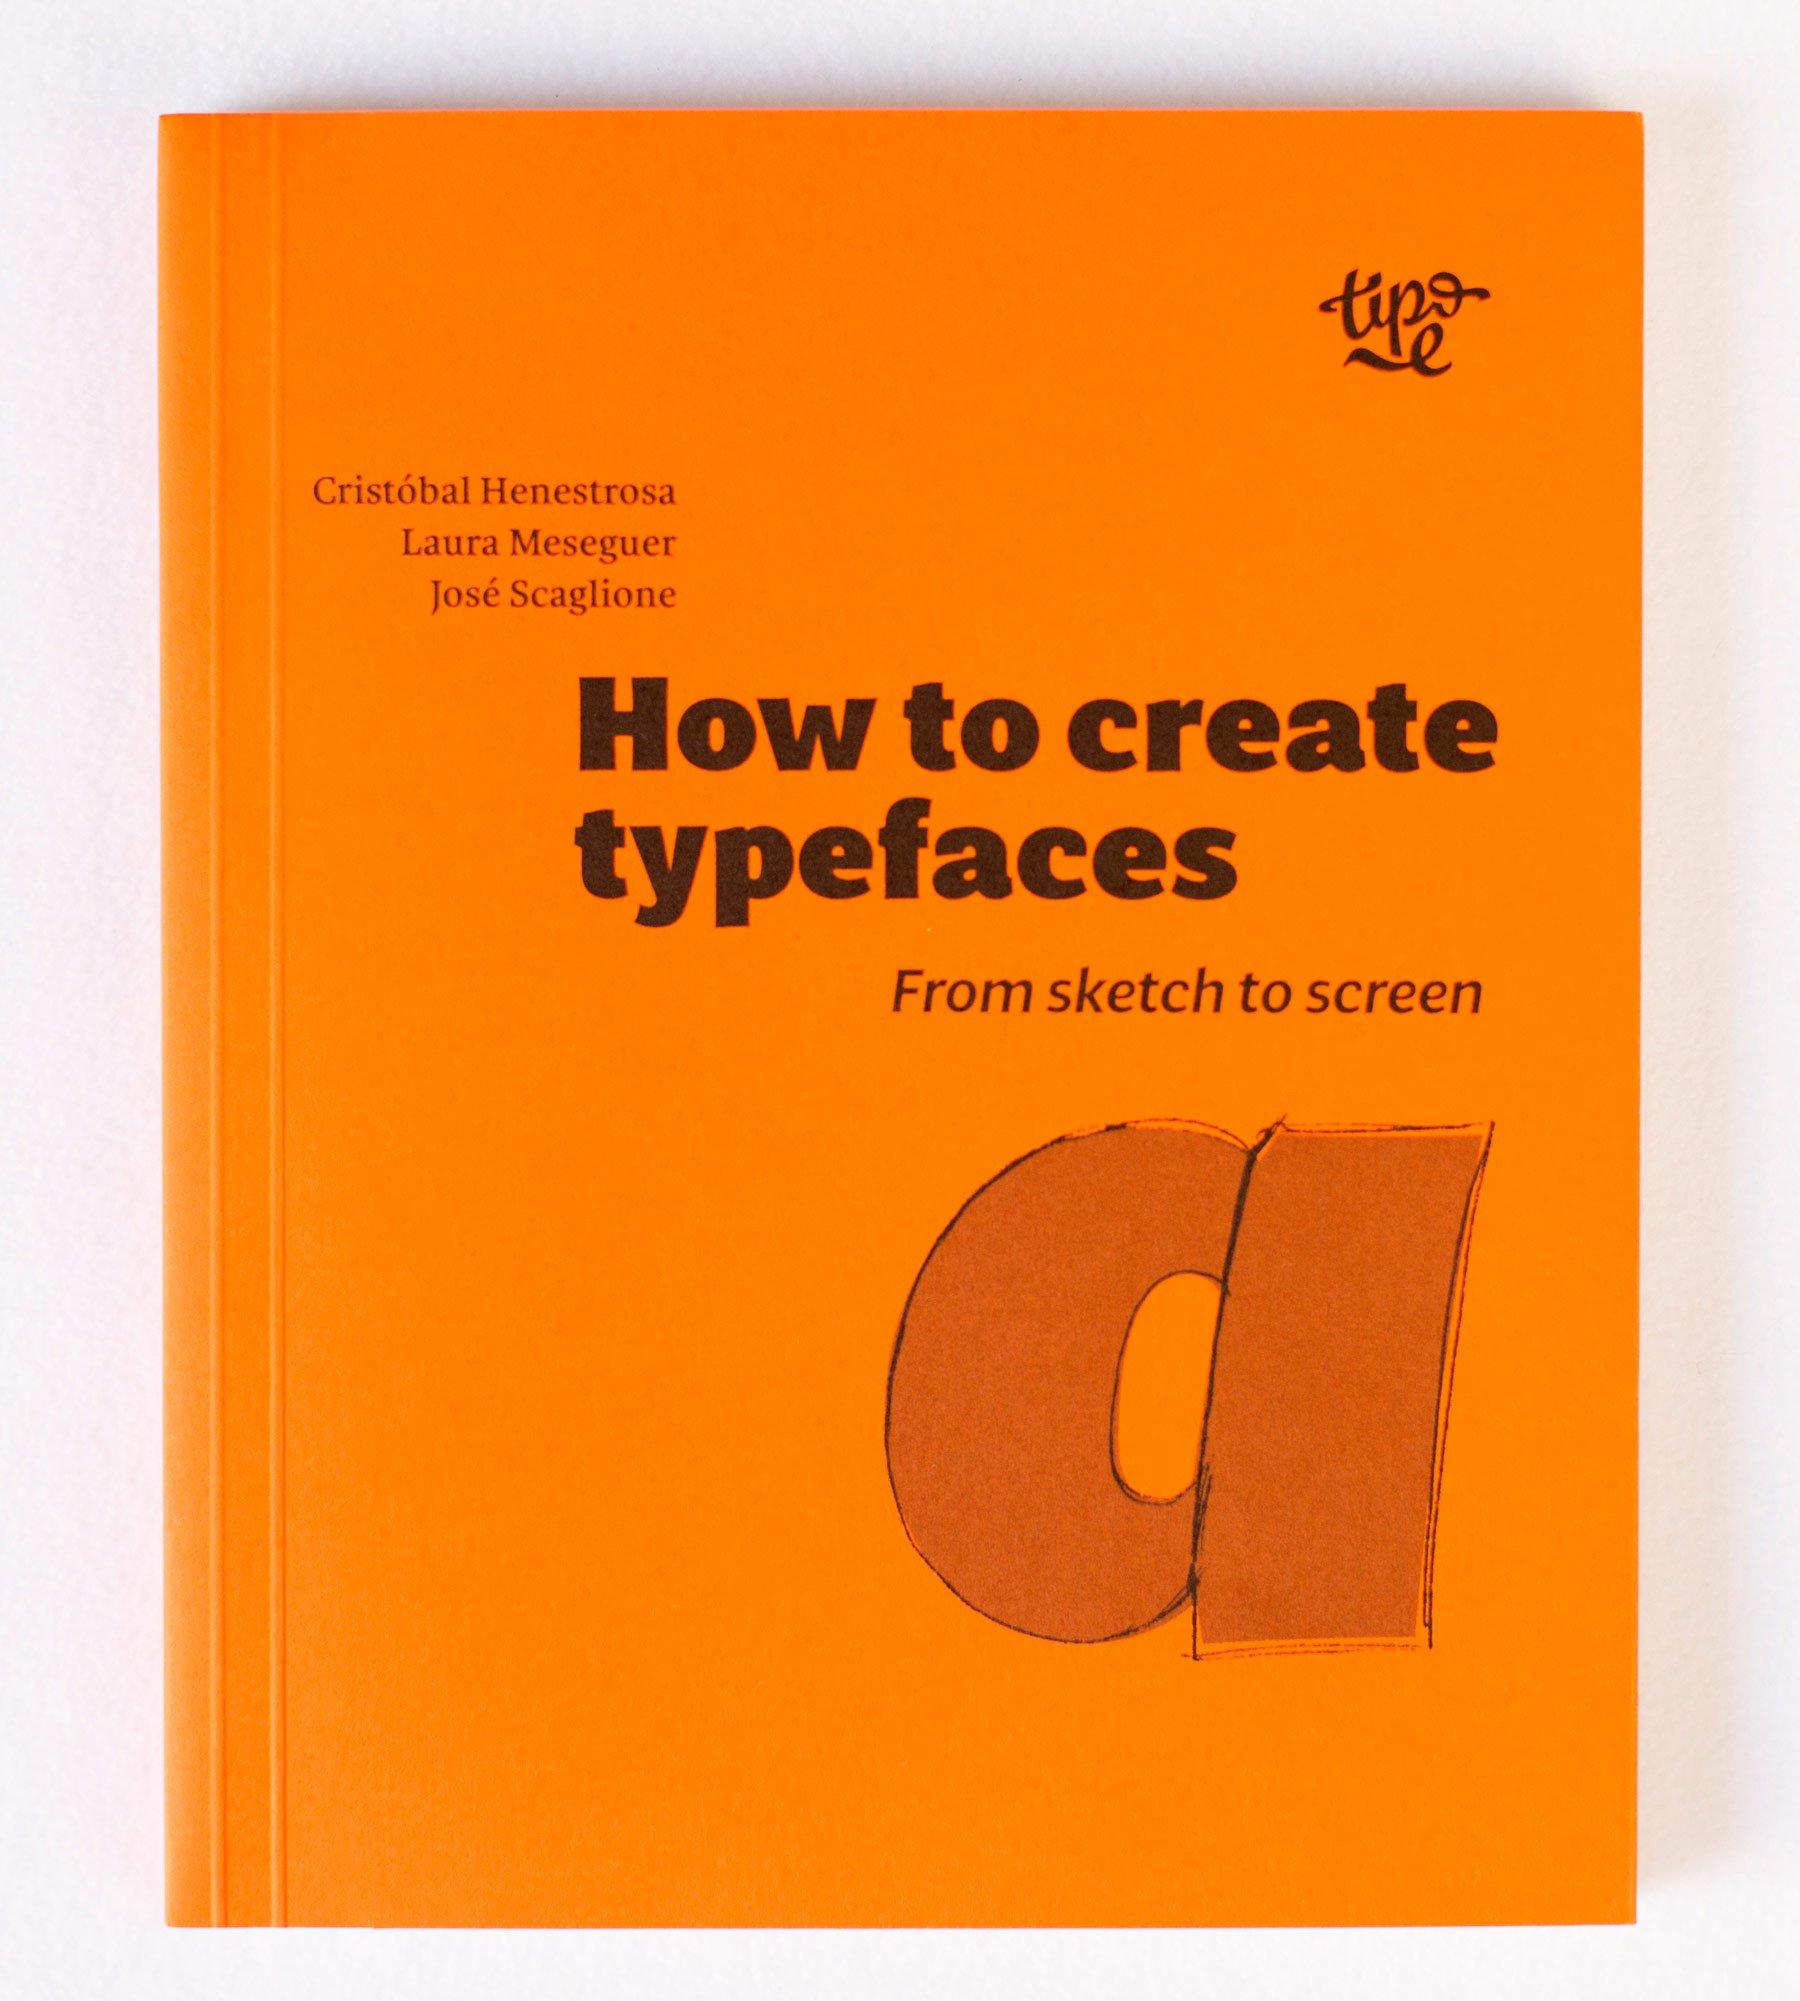 How to create typefaces – from sketch to screen